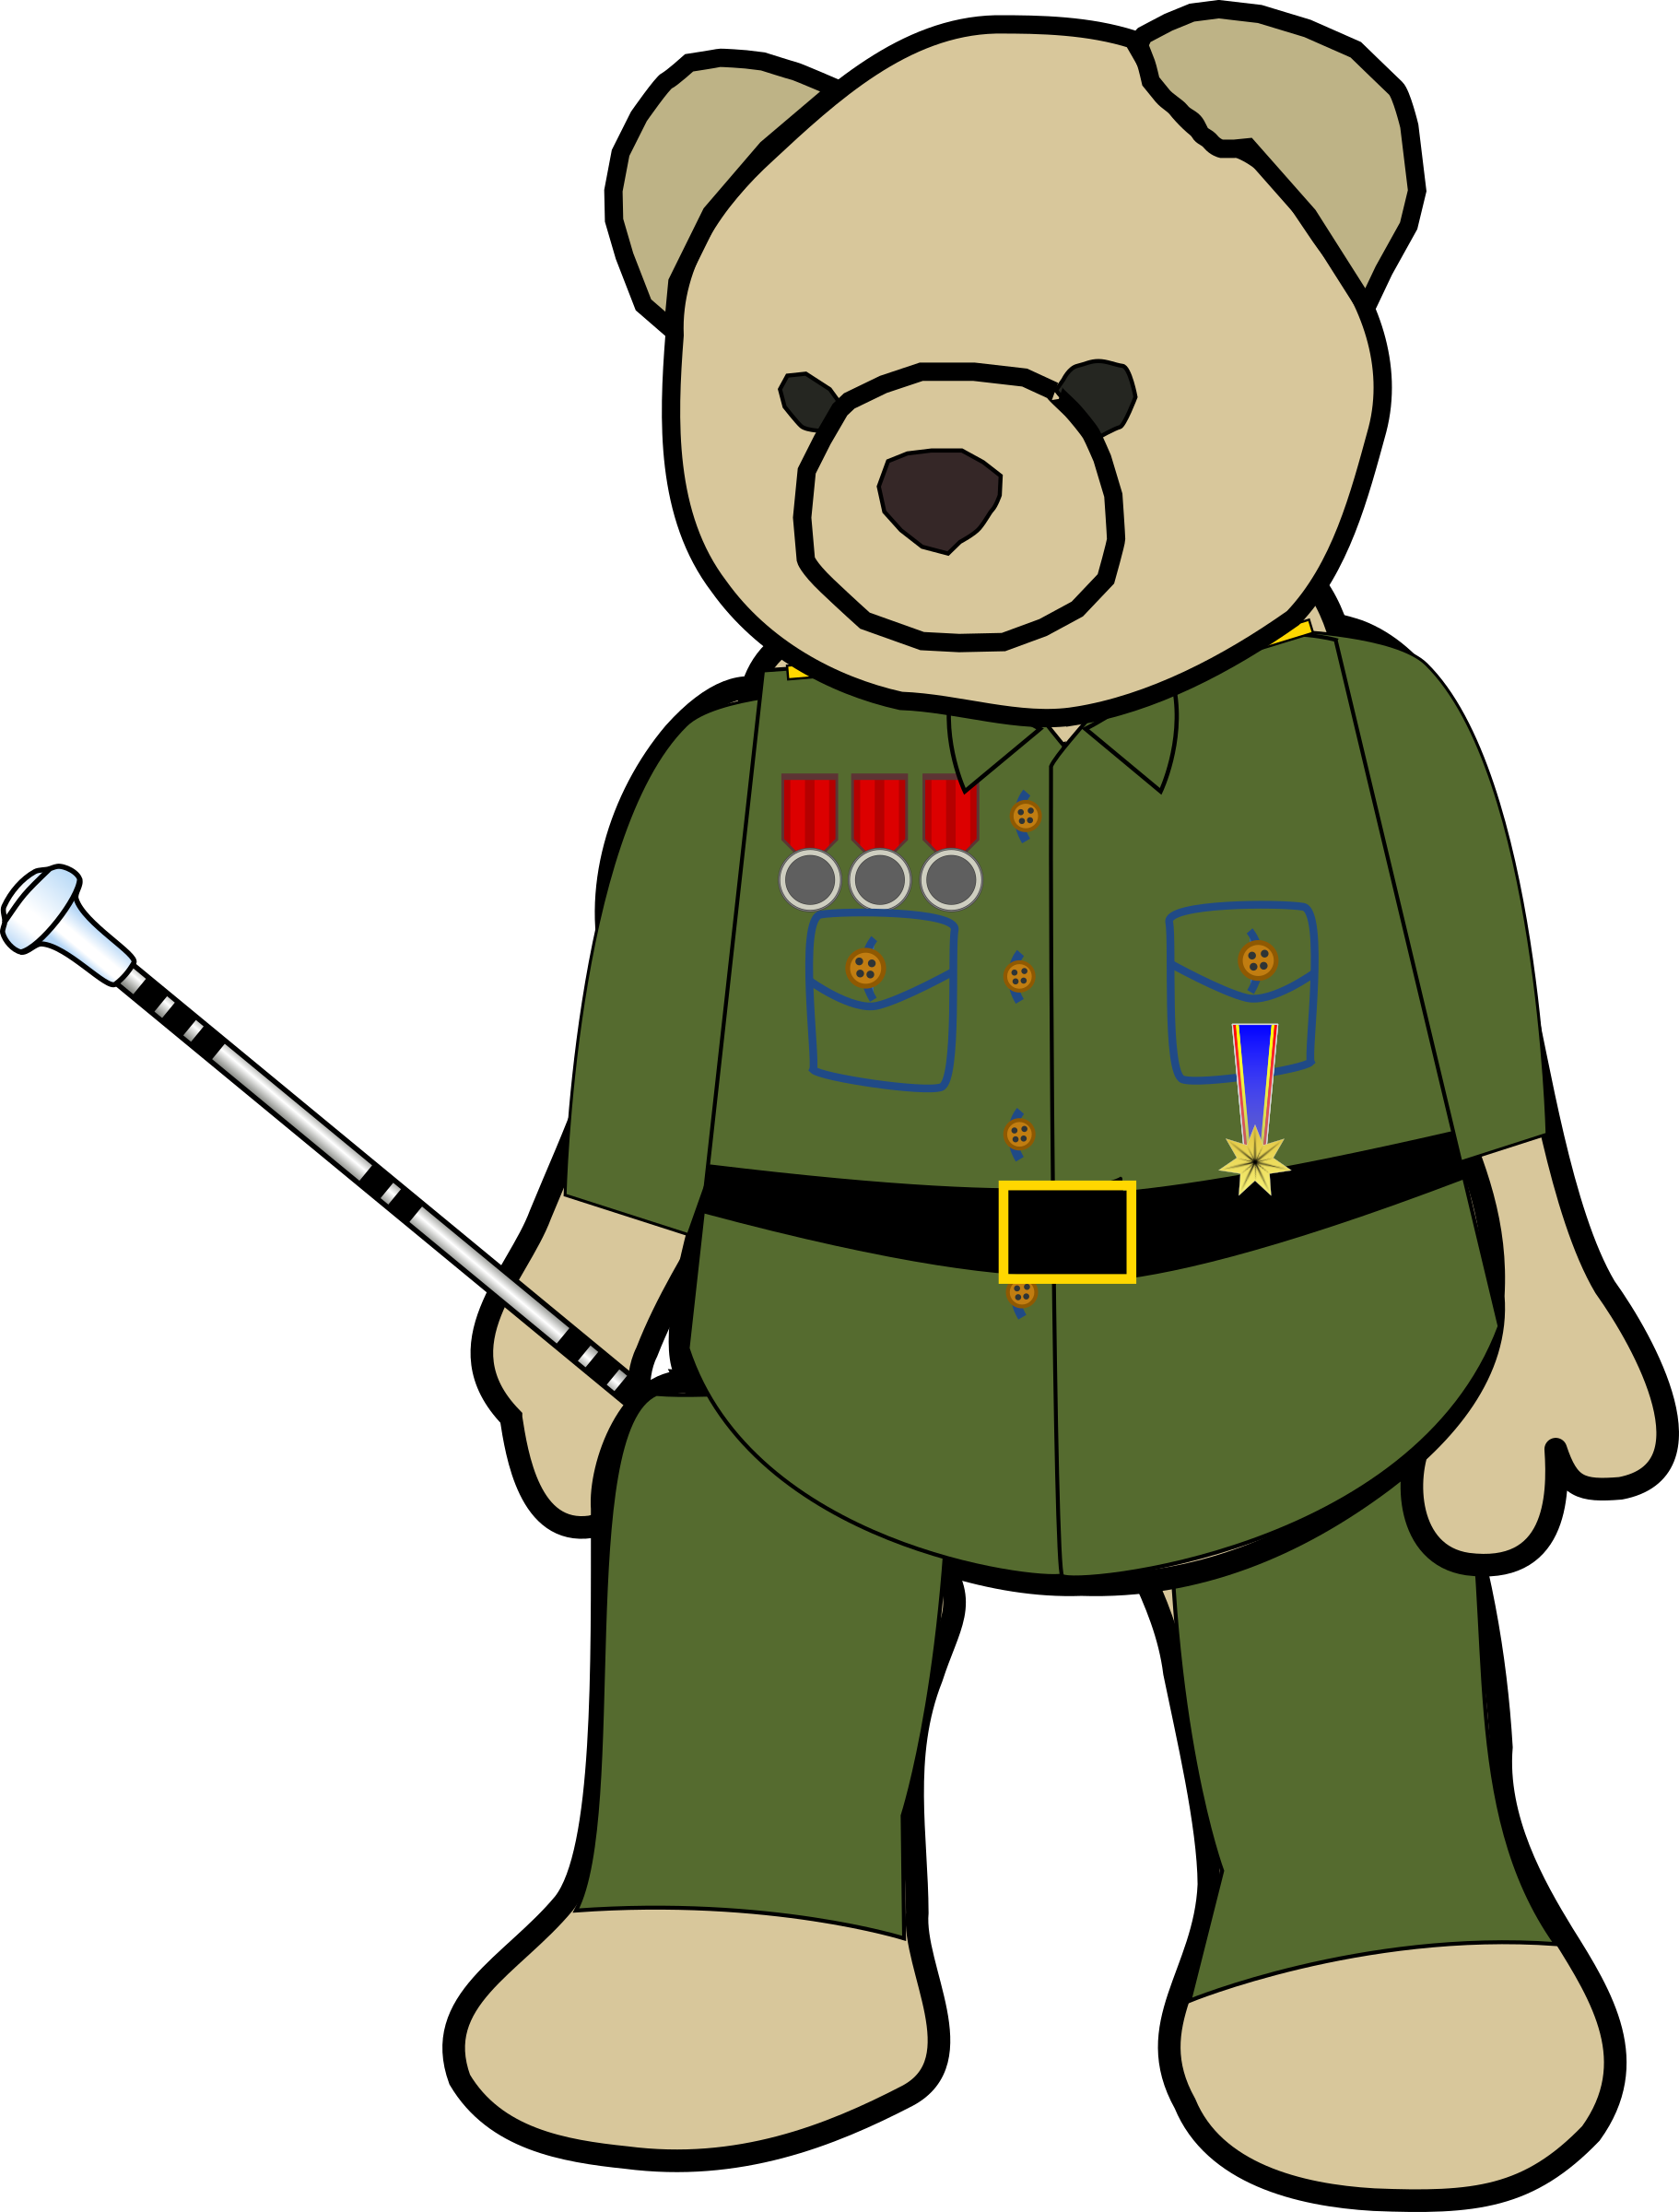 Field Marshal Teddy by derkommander0916